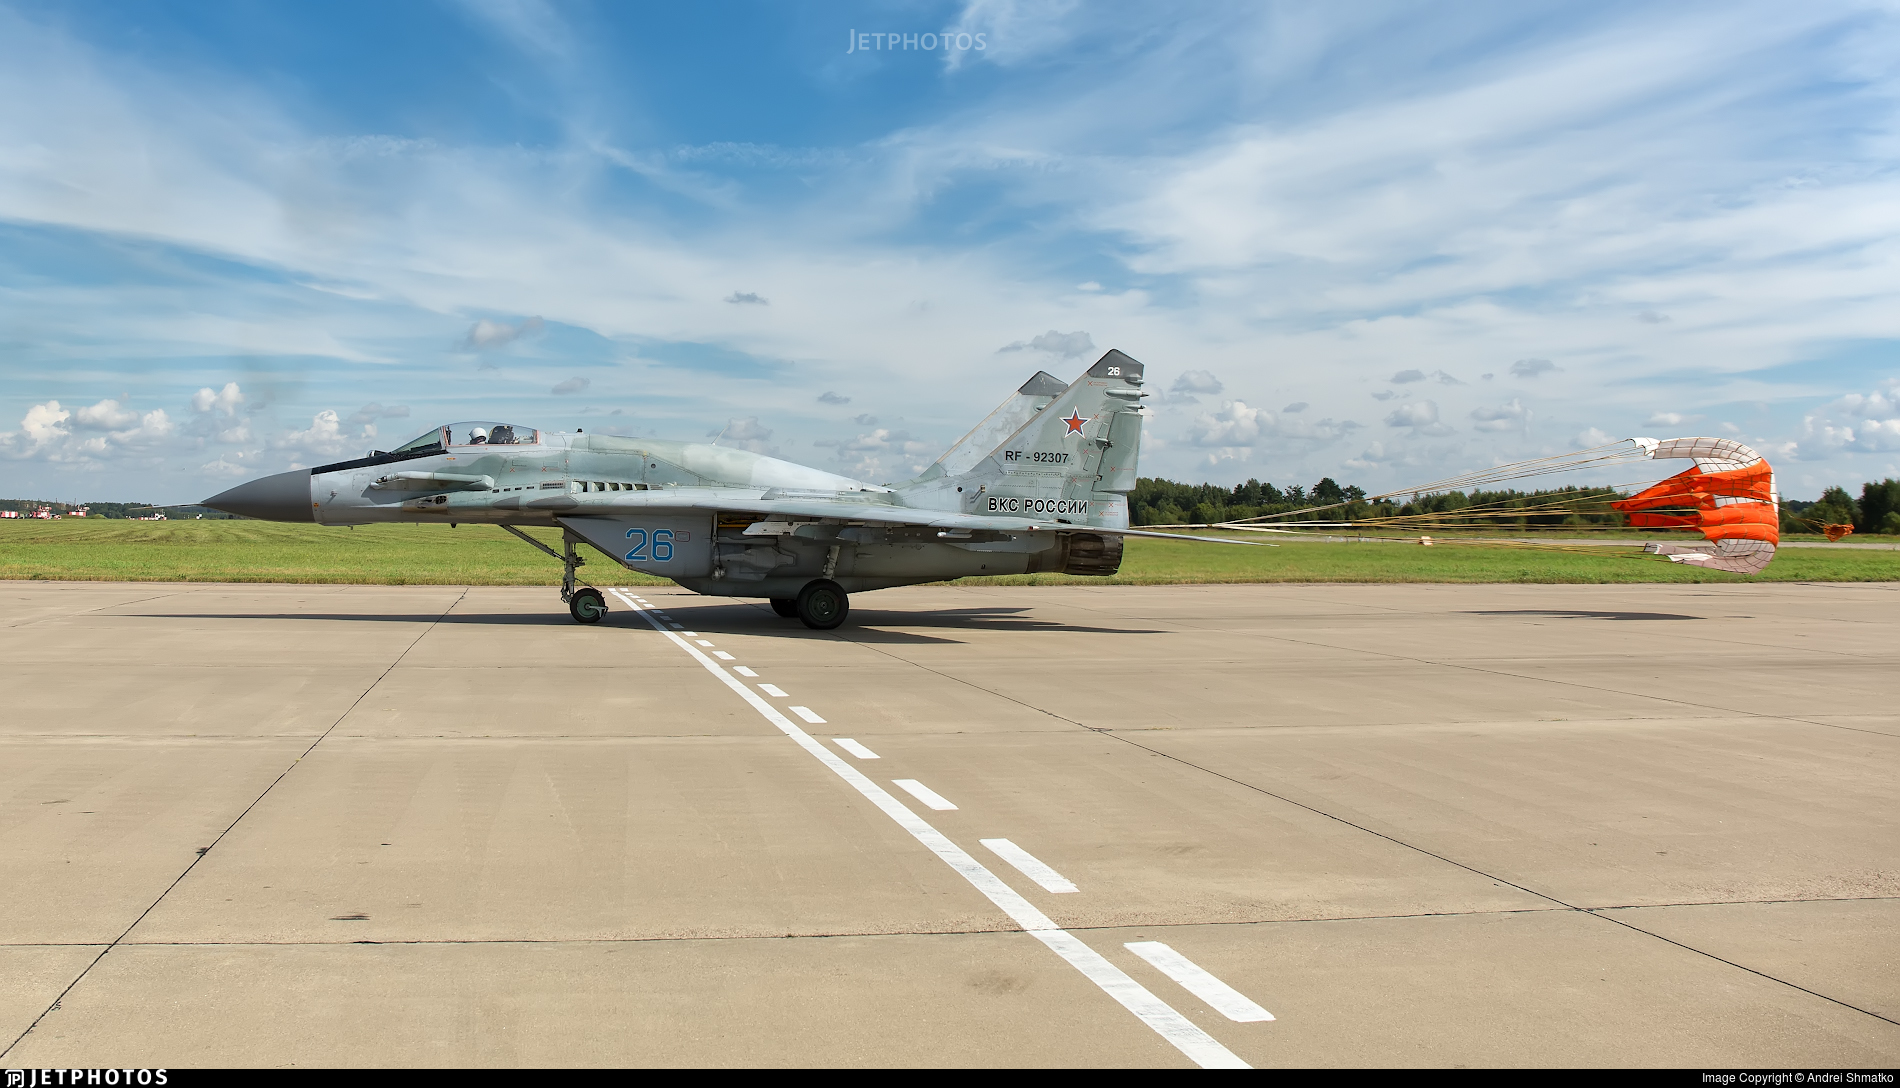 RF-92307 - Mikoyan-Gurevich MiG-29SMT Fulcrum C - Russia - Air Force